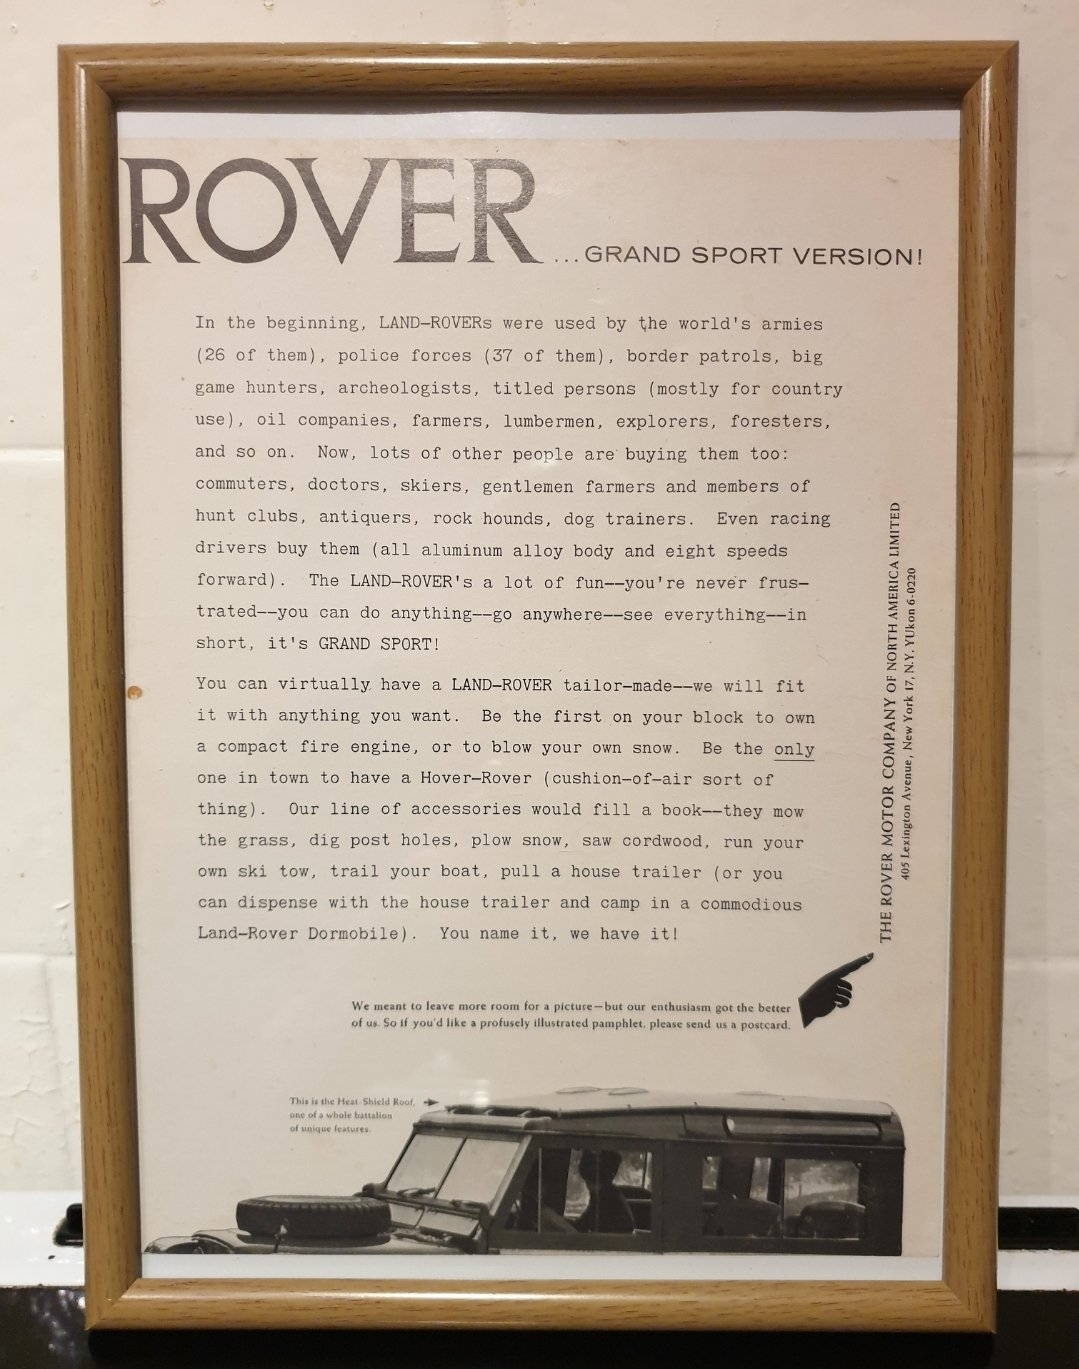 1963 Land Rover Framed Advert Original  For Sale (picture 1 of 2)